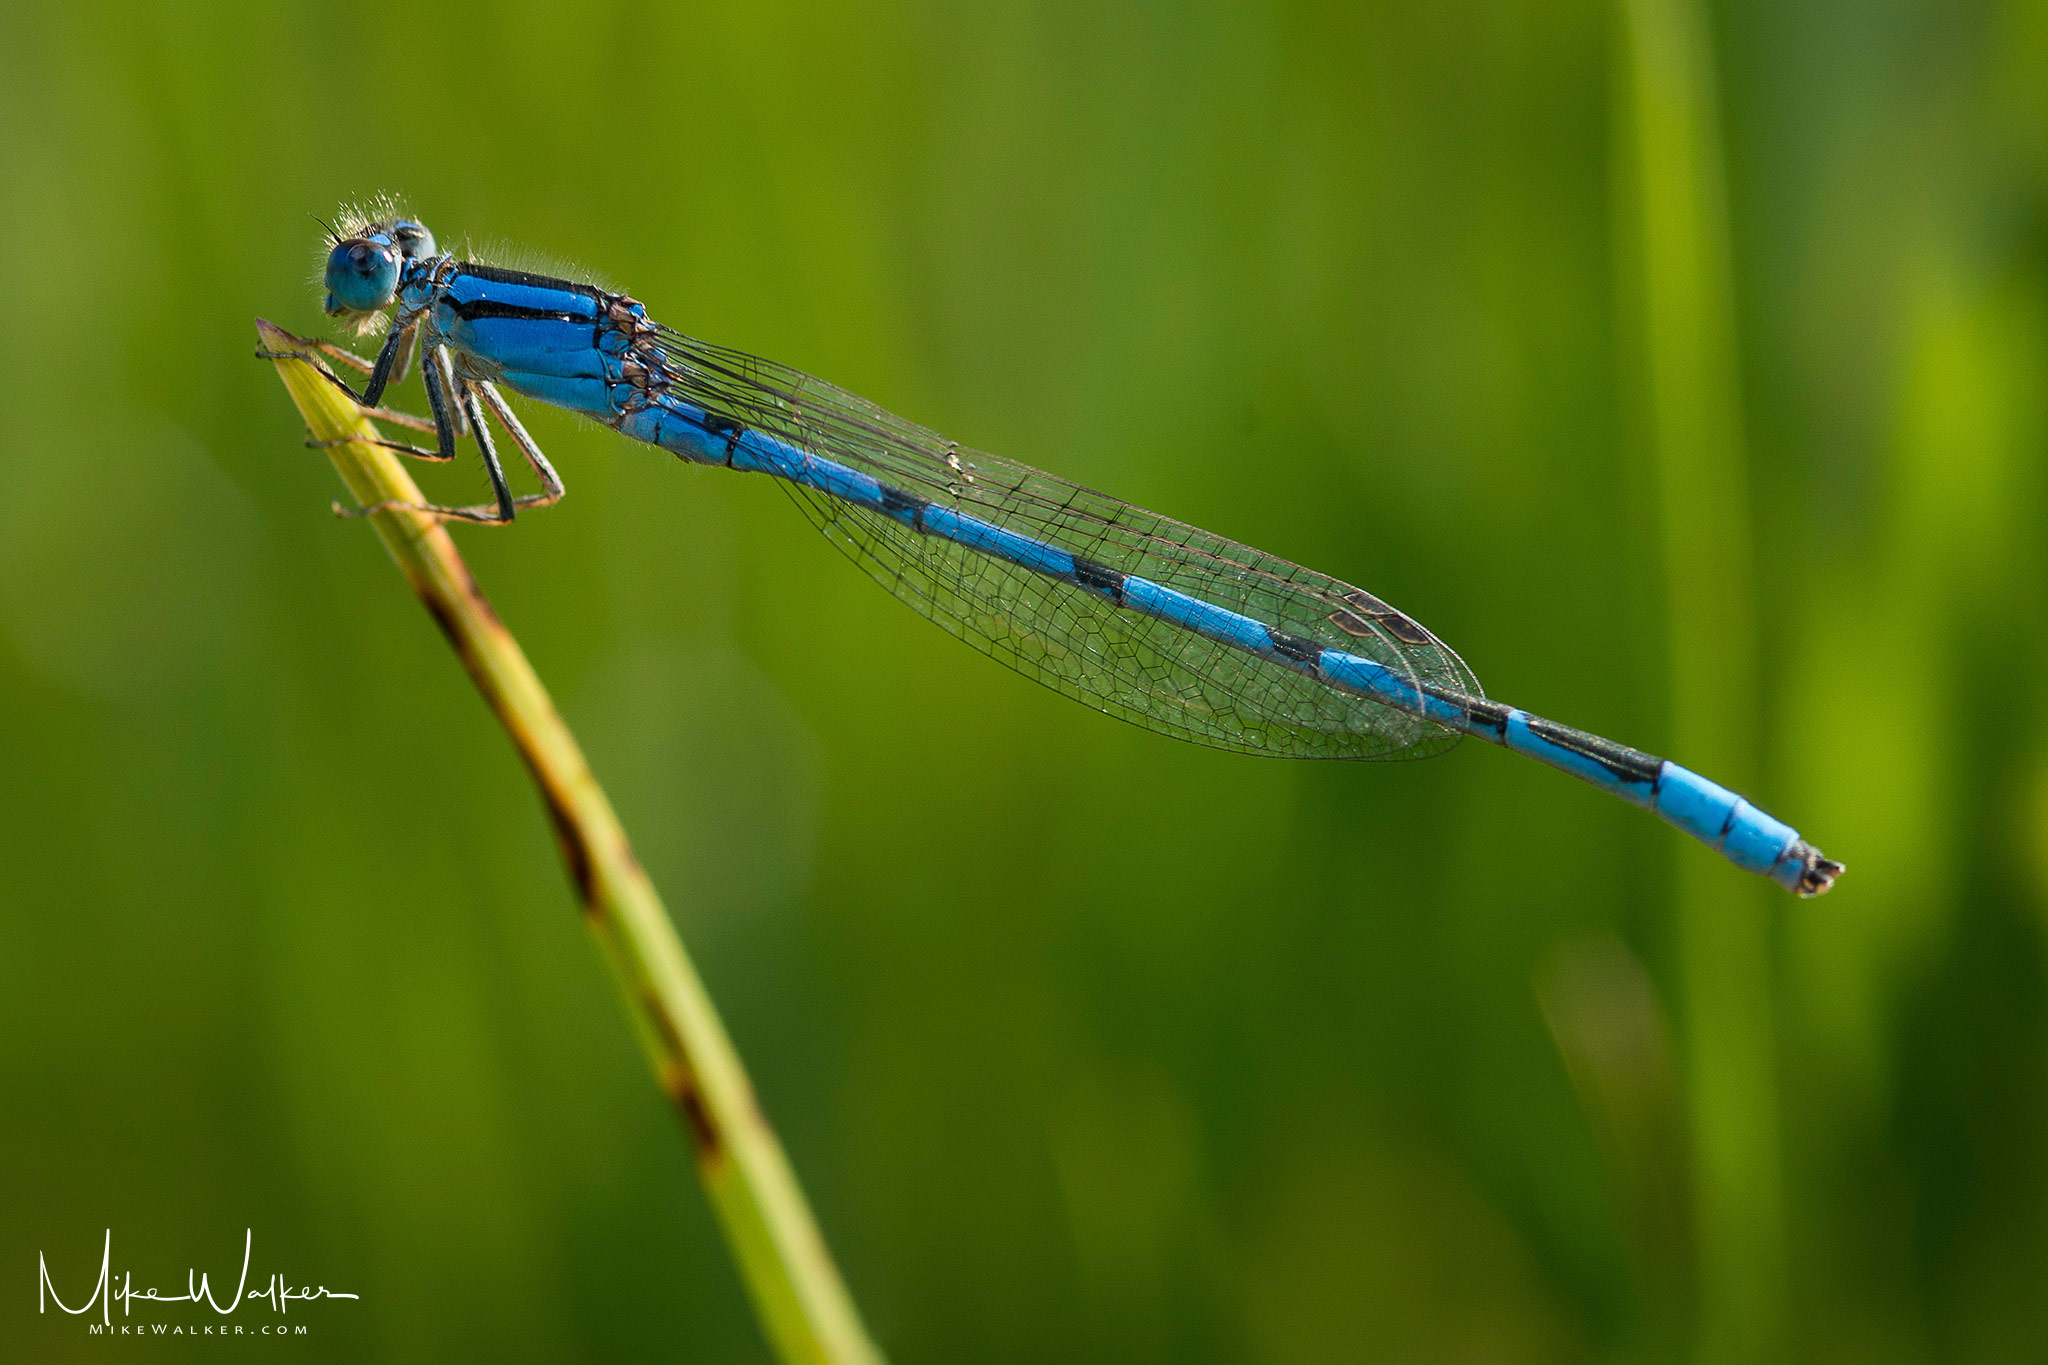 Blue damselfly on a blade of grass. Nature photography by Mike Walker.